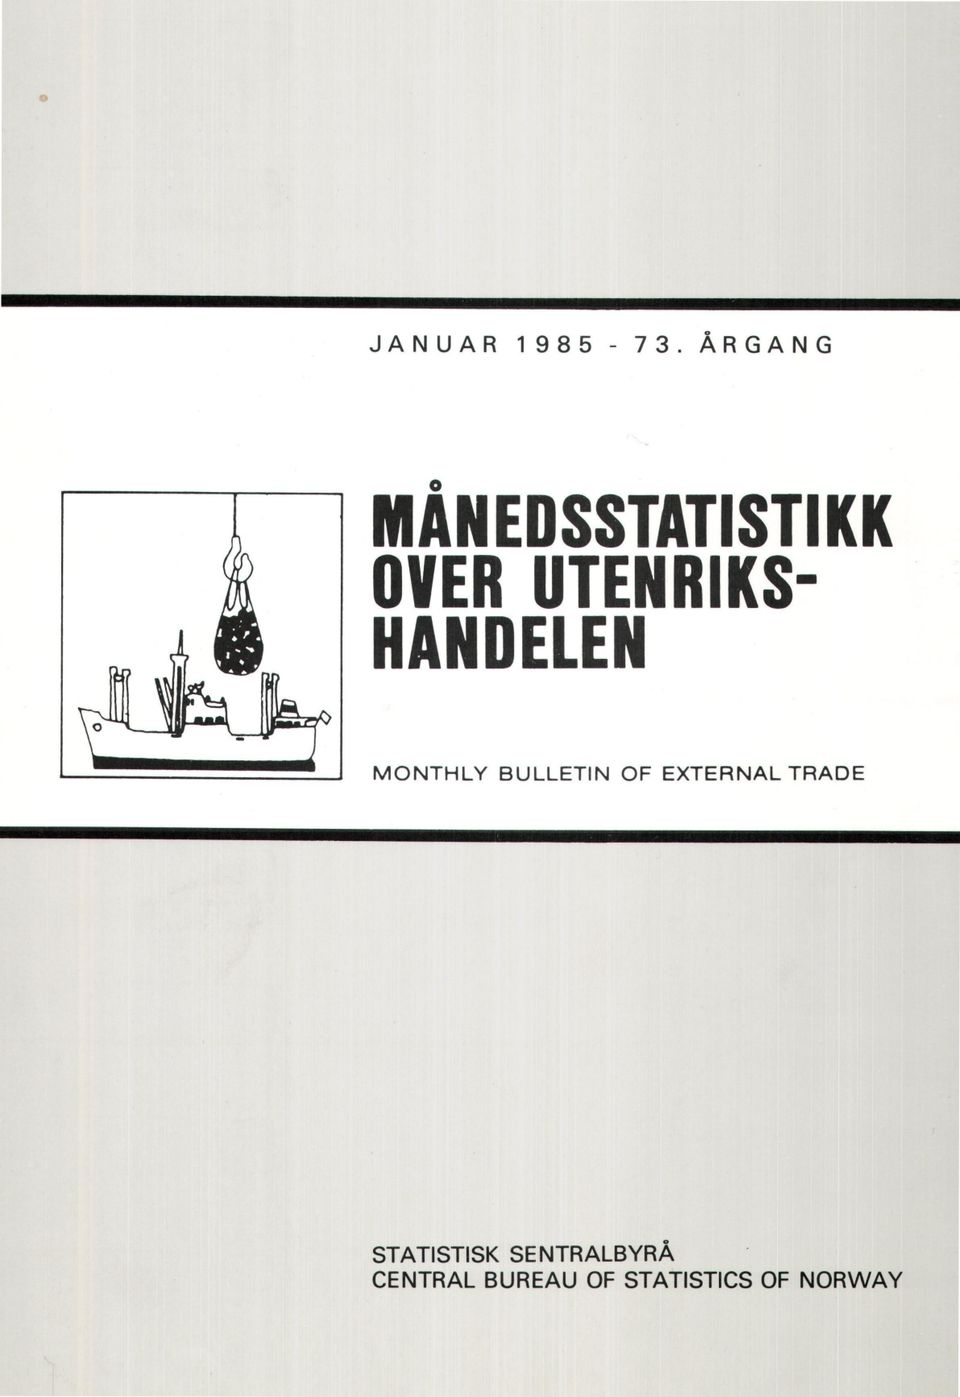 UTENRIKSHANDELEN MONTHLY BULLETIN OF